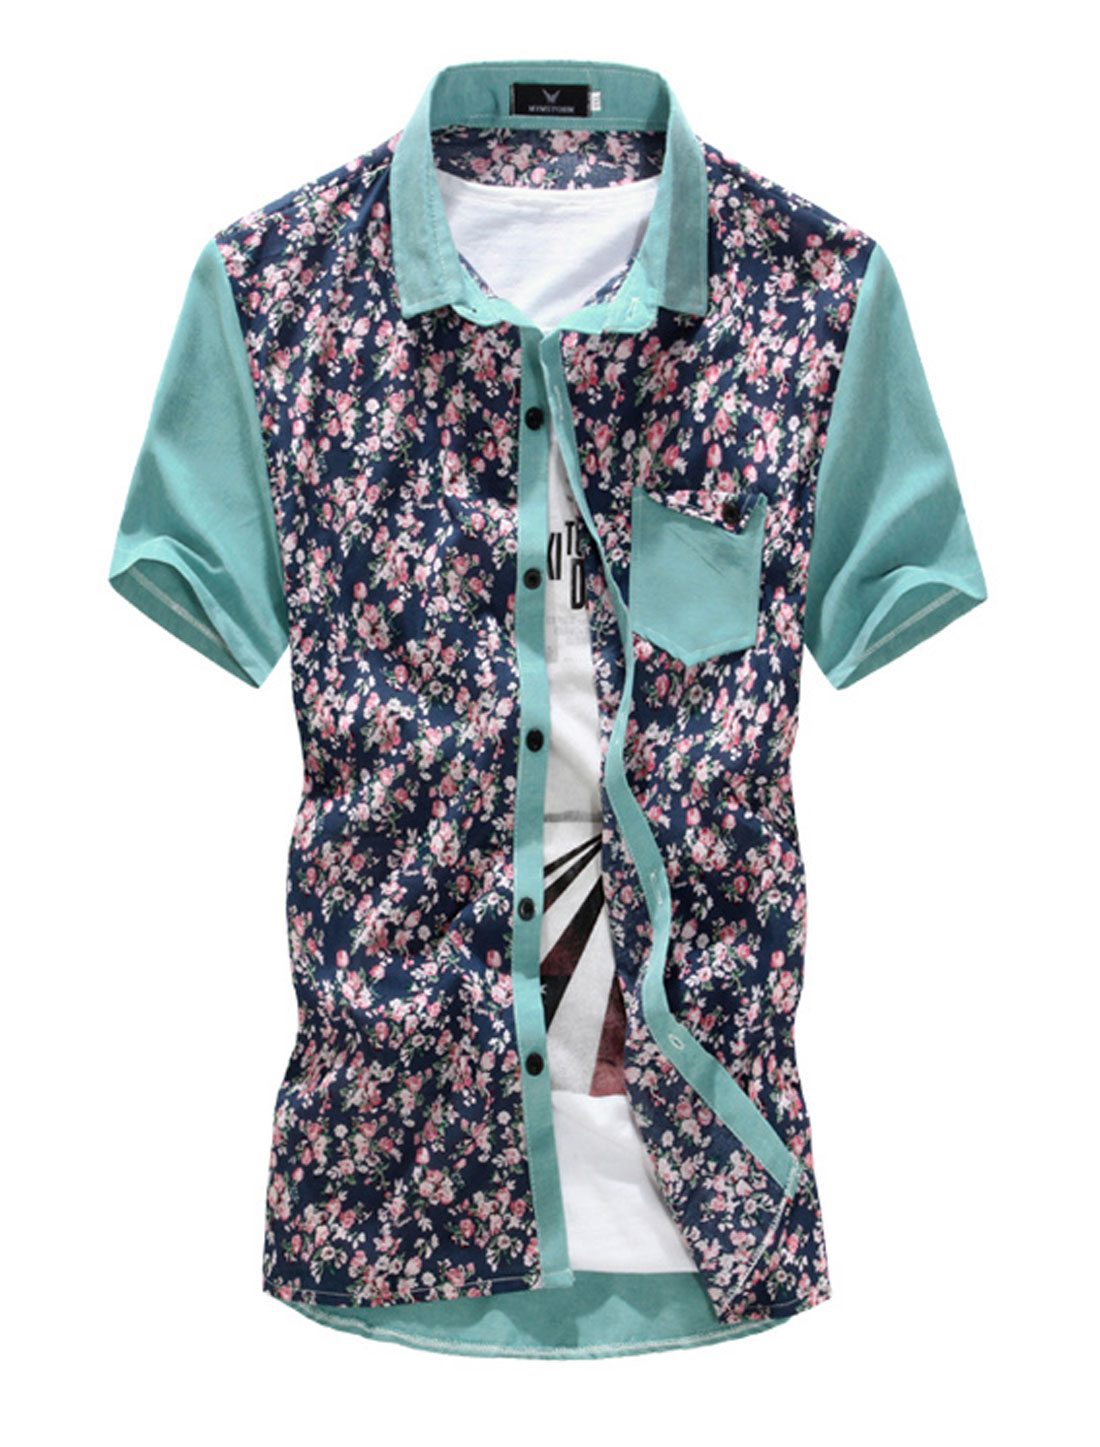 Men Flower Pattern Single Breasted Short Sleeve Casual Shirt Light Green M